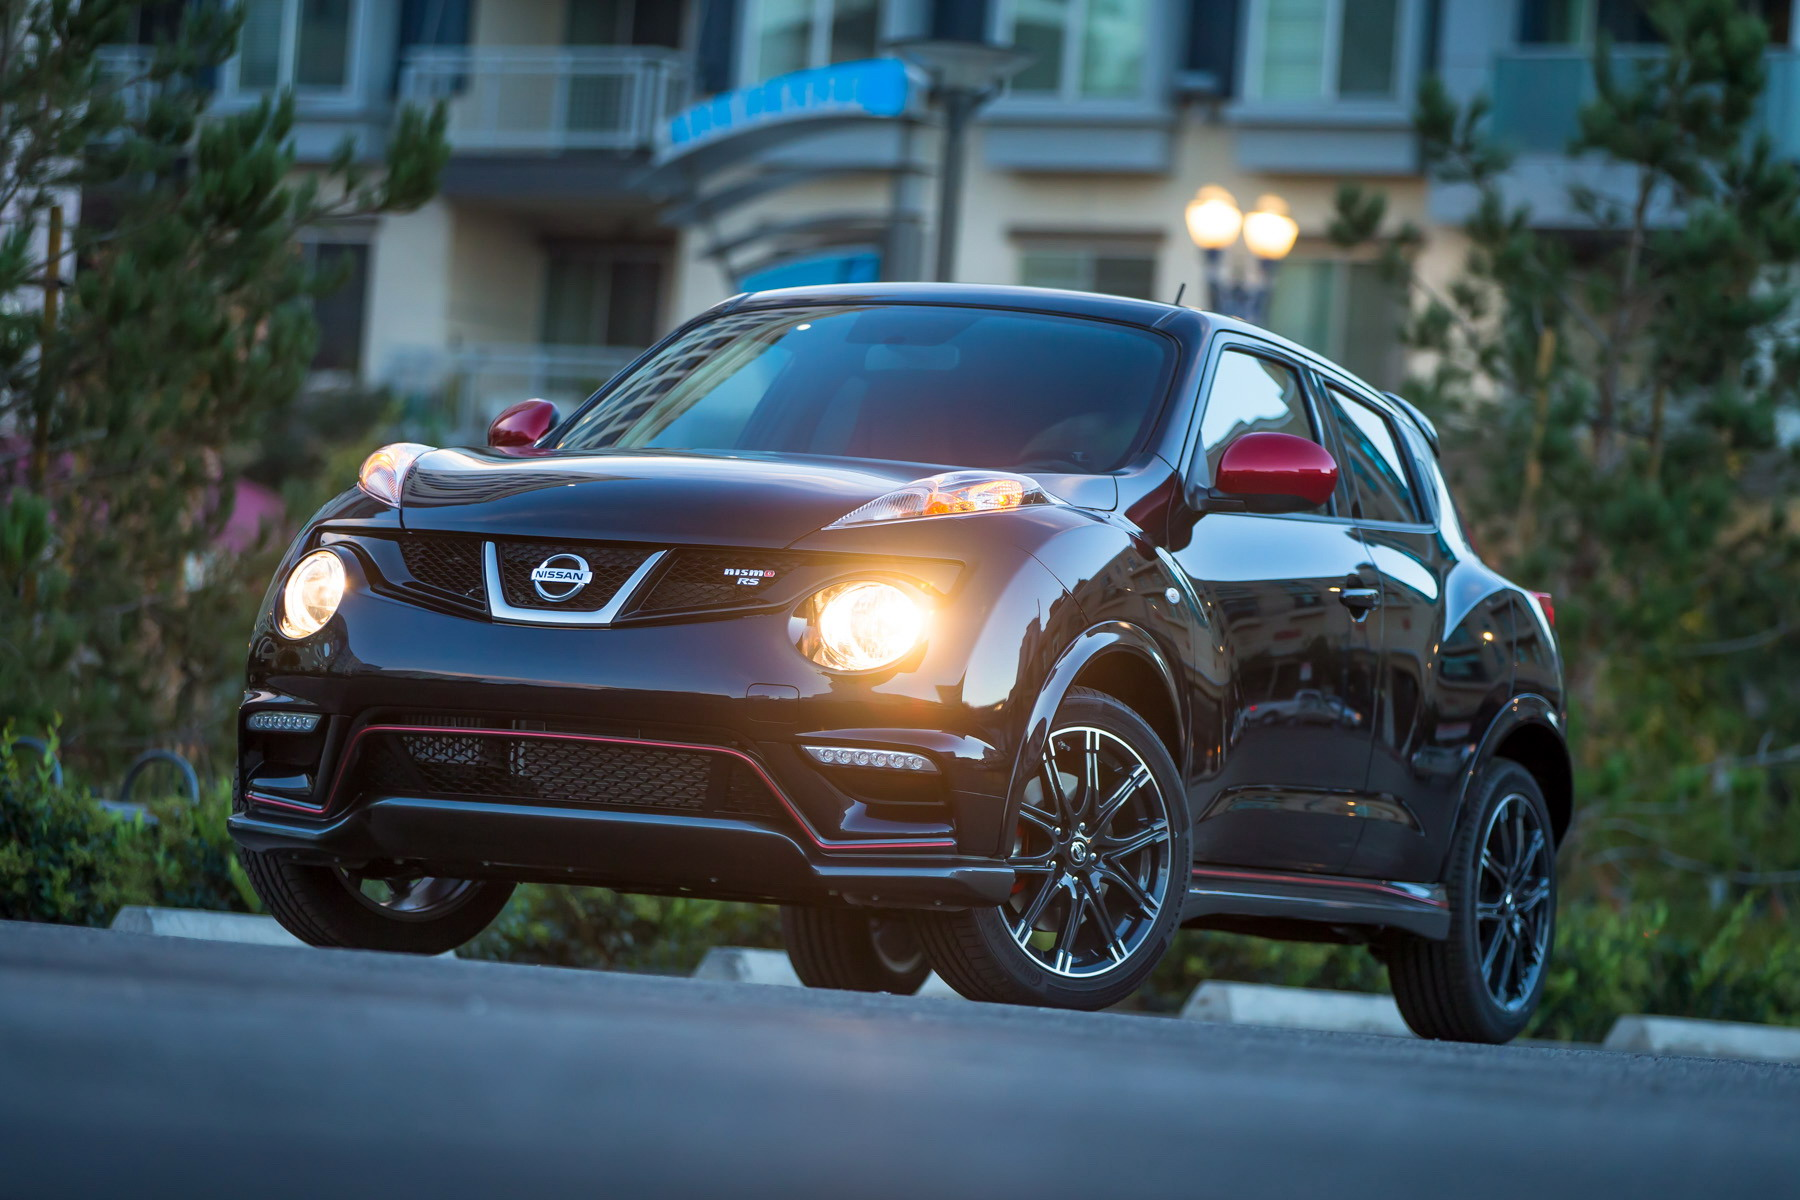 2014 nissan juke nismo rs gallery 533311 top speed. Black Bedroom Furniture Sets. Home Design Ideas